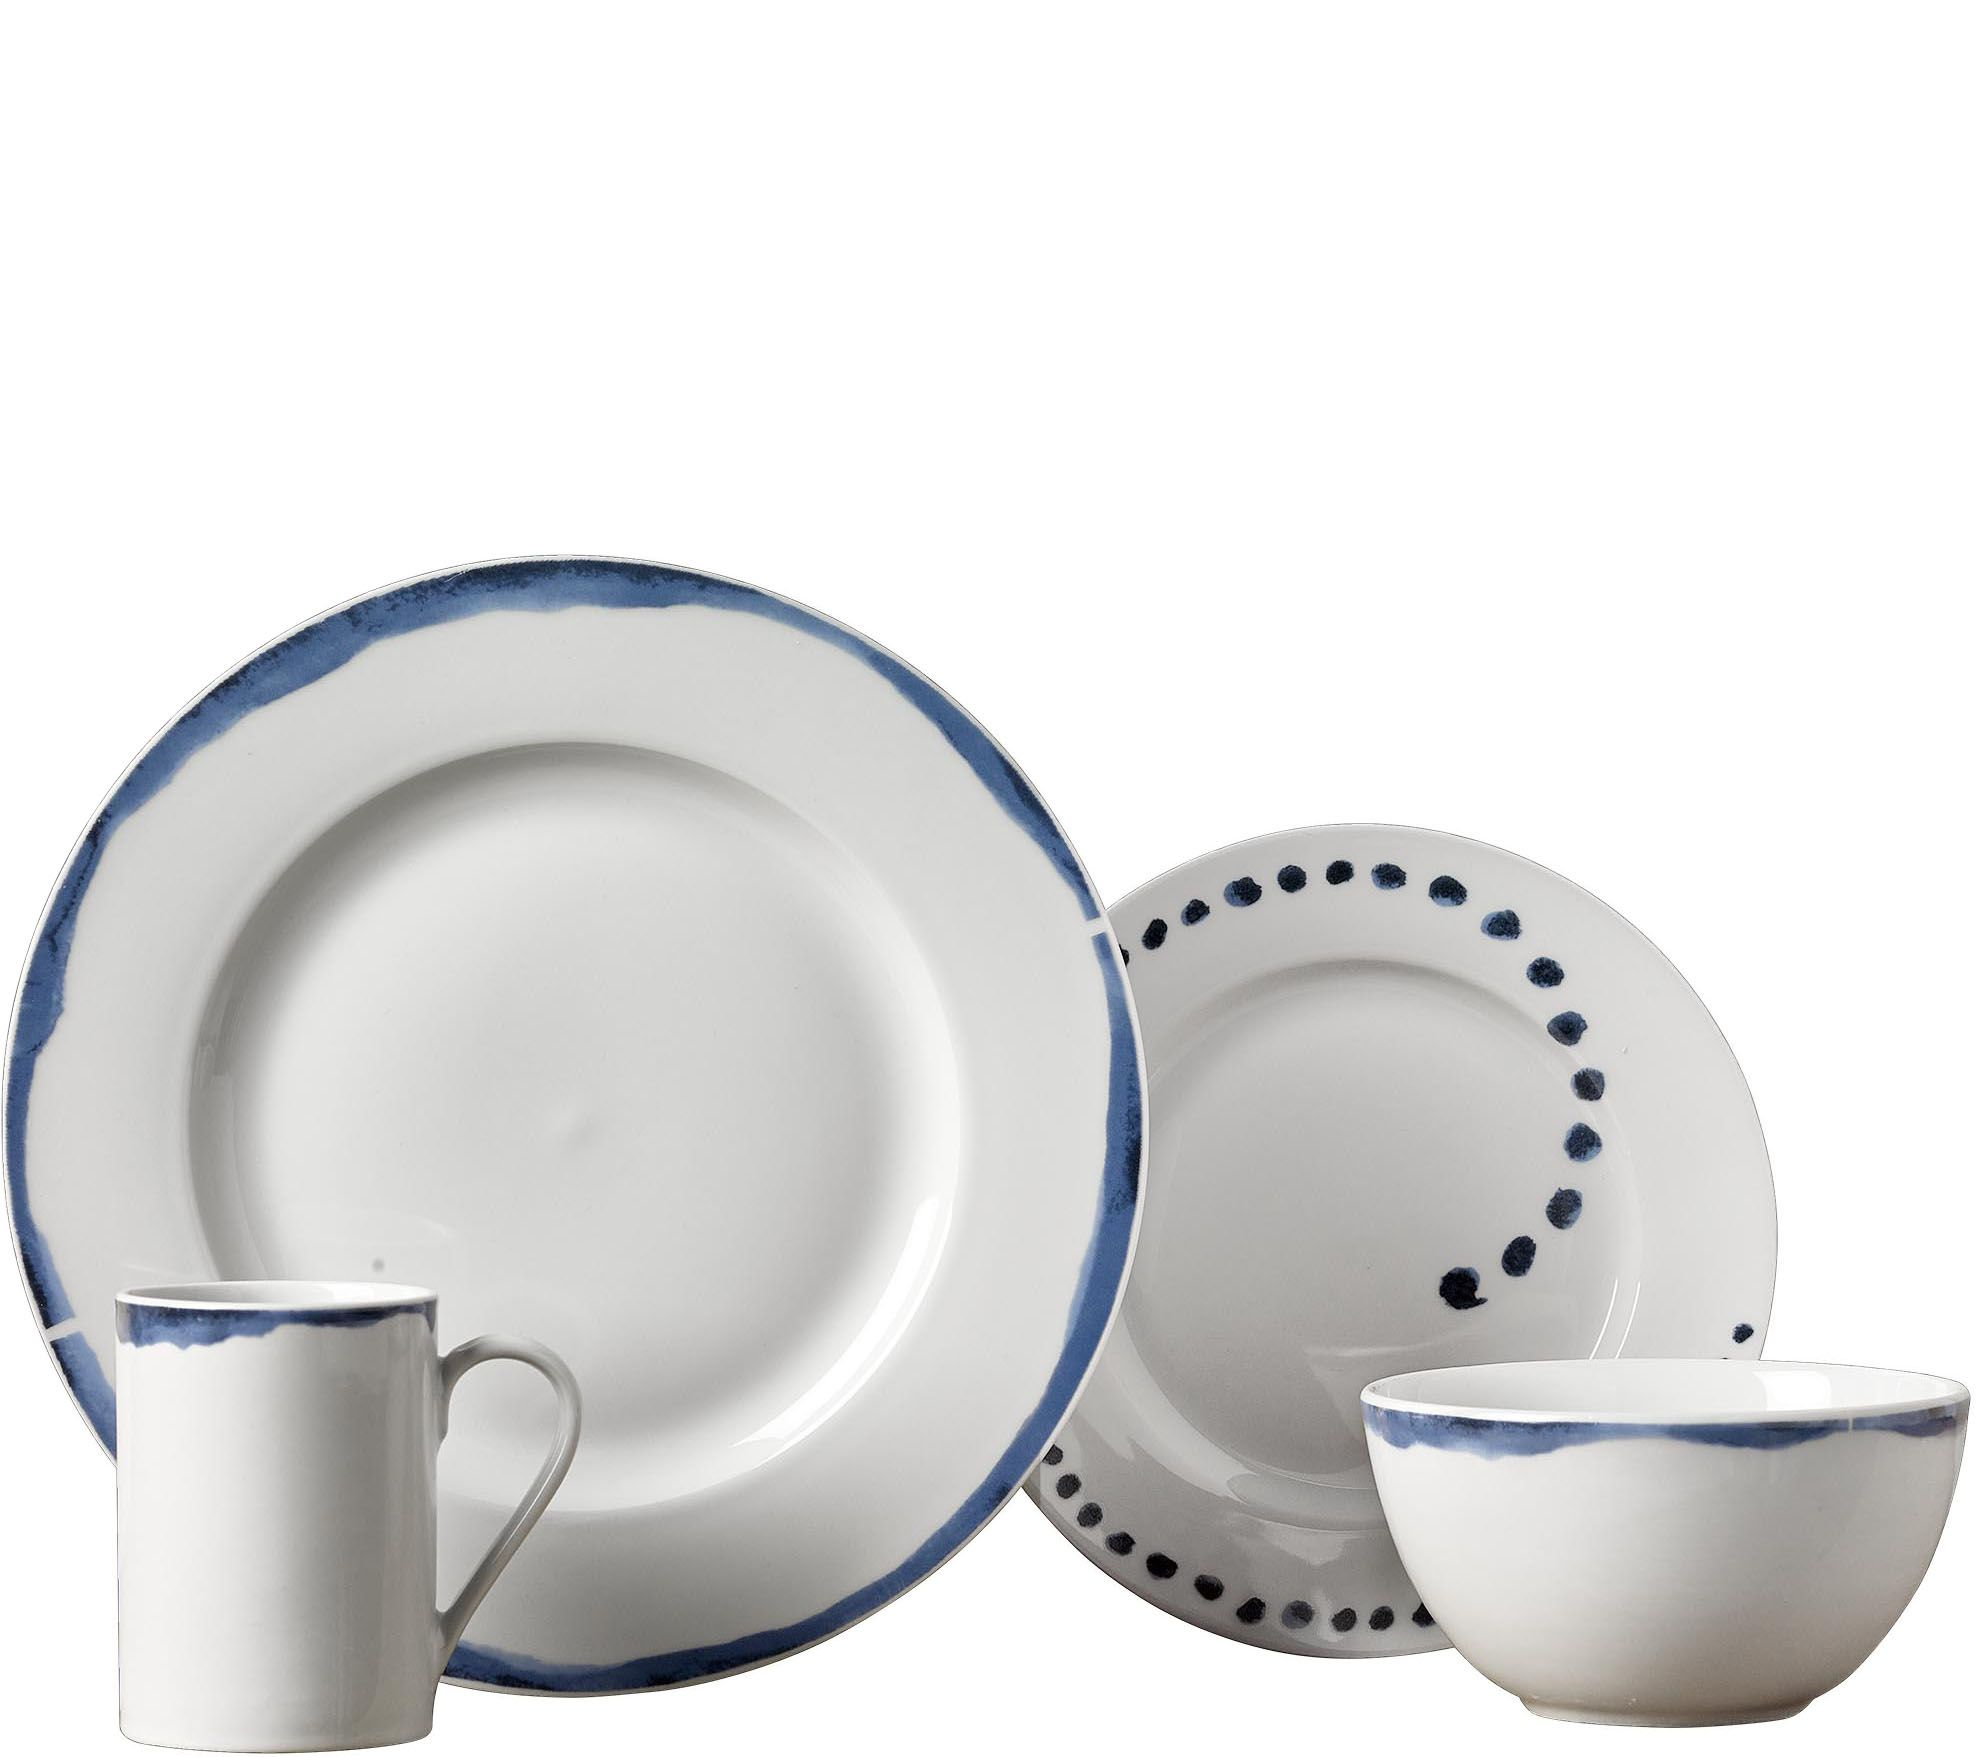 Tabletops Gallery 16 Piece Dinnerware Set   Isla U2014 QVC.com